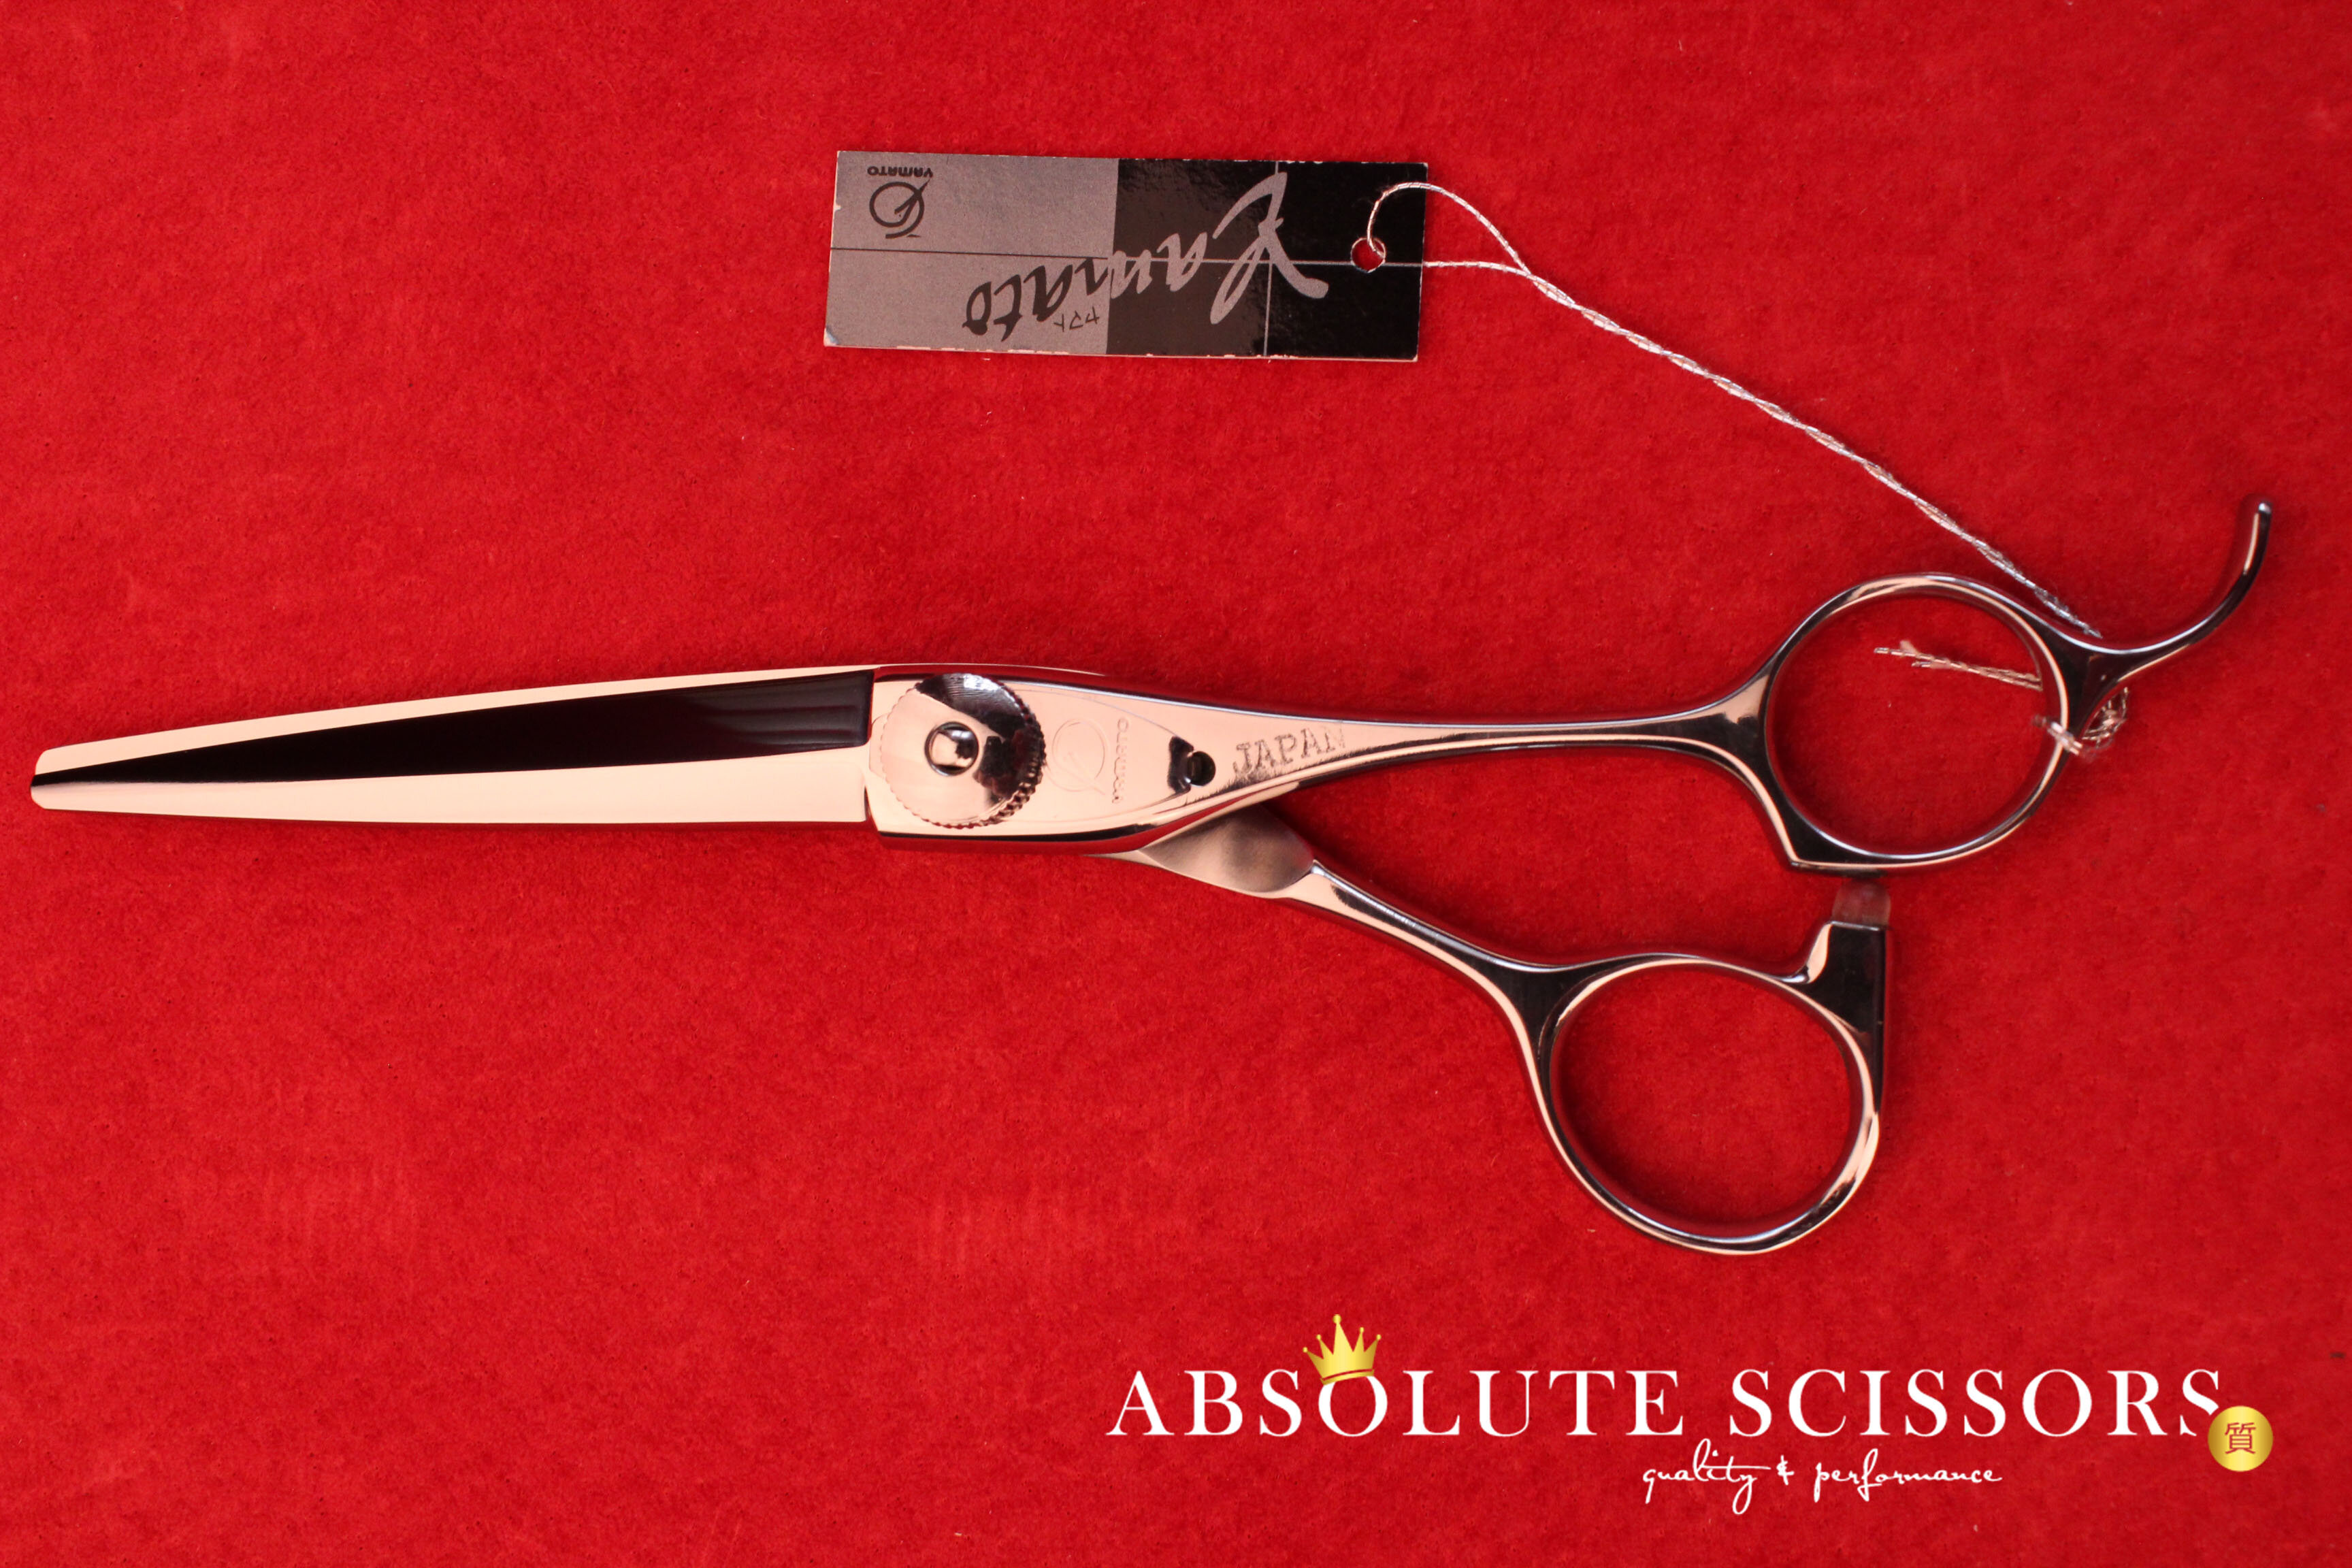 Royal-W60-3744-Yamato-hair-scissors-shears-size-6-inches